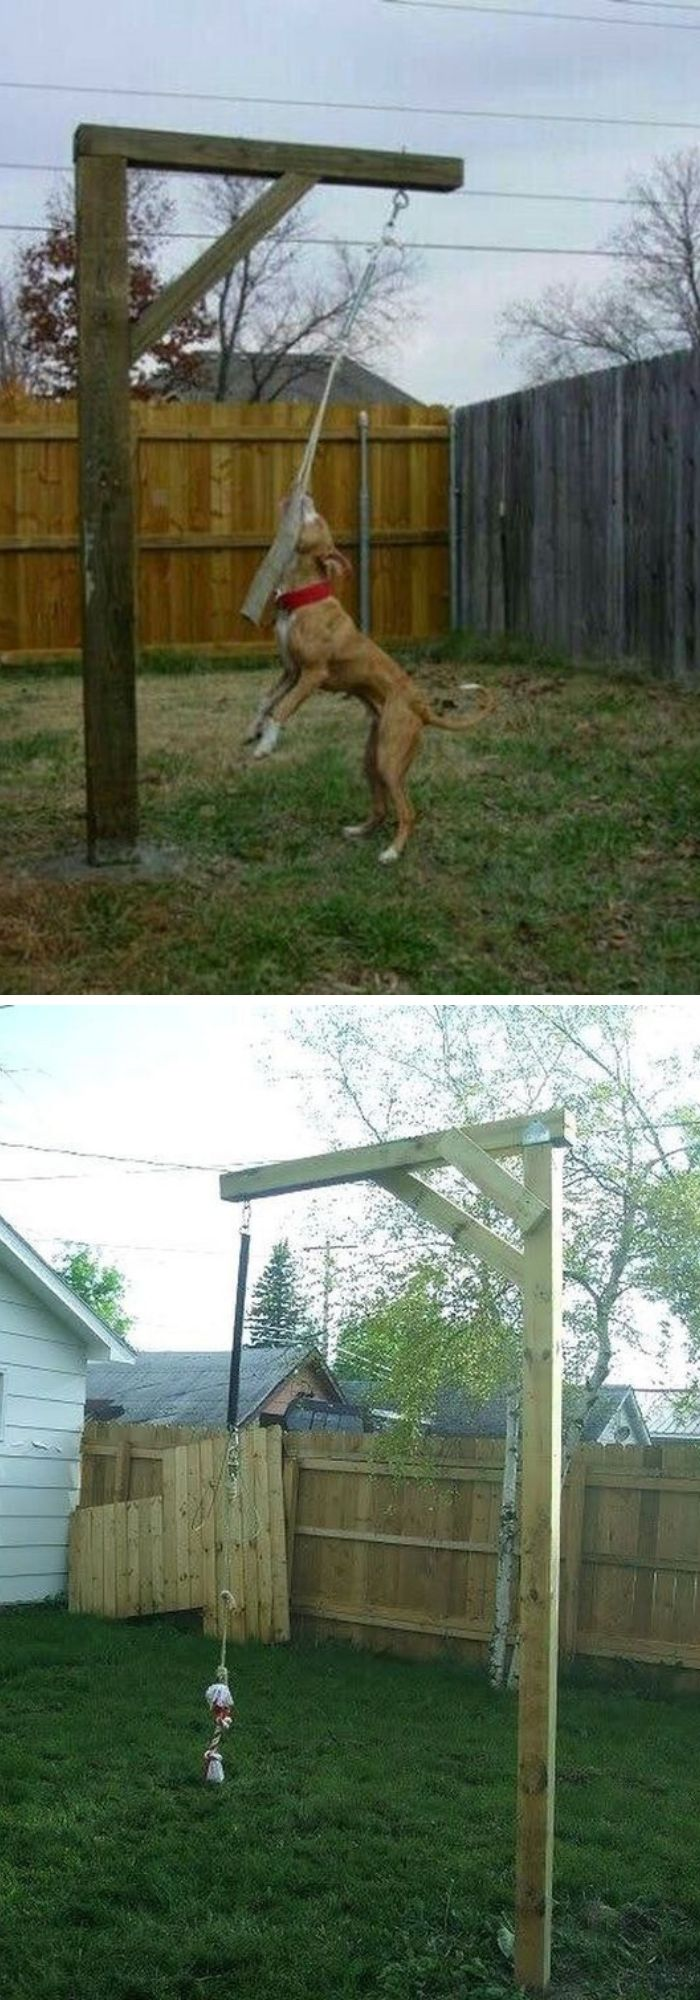 10+ Great Dog-Friendly Landscaping Ideas - FarmFoodFamily